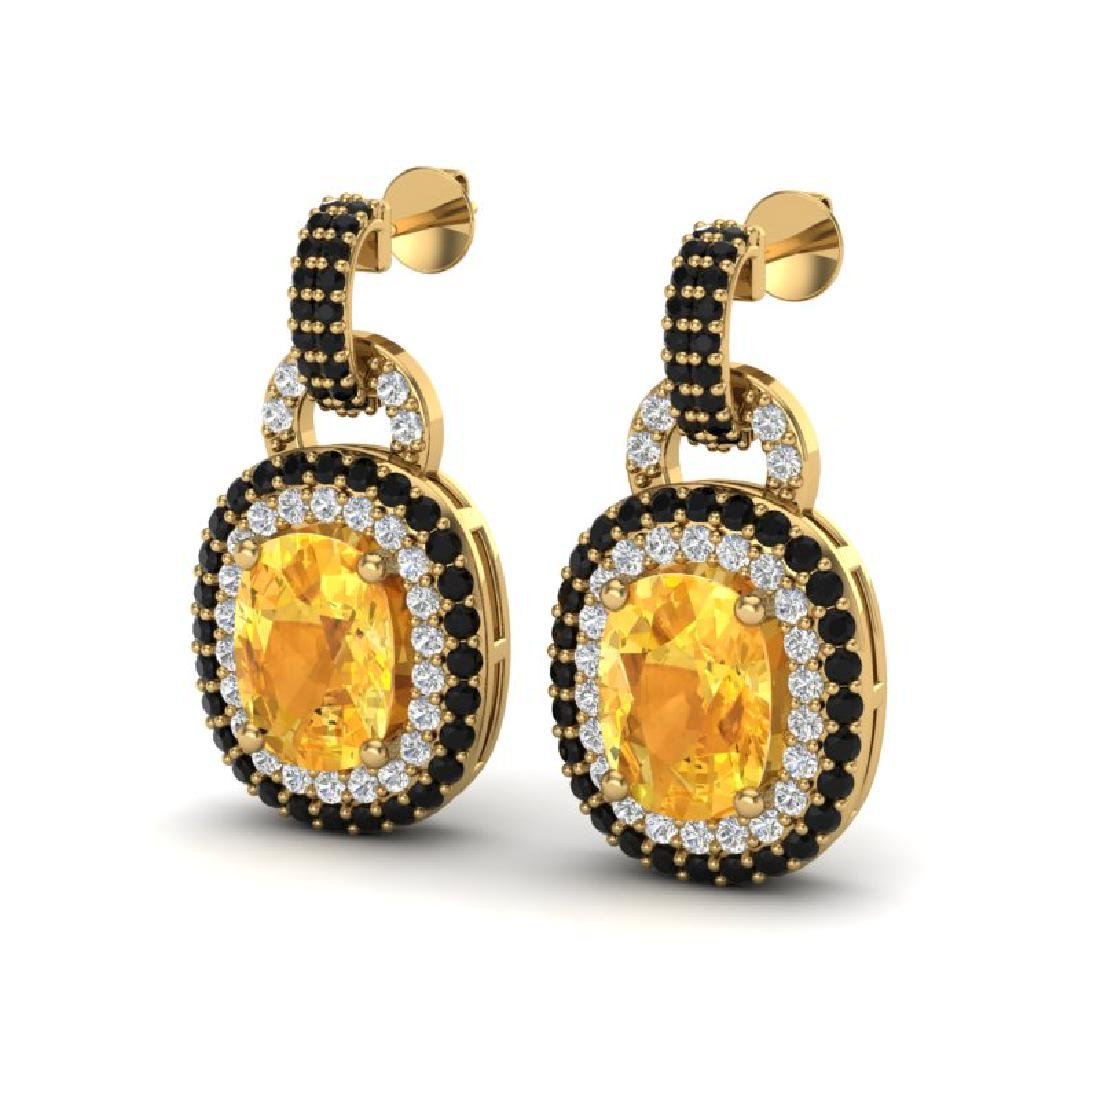 5 CTW Citrine & Black Micro Pave VS/SI Diamond Earrings